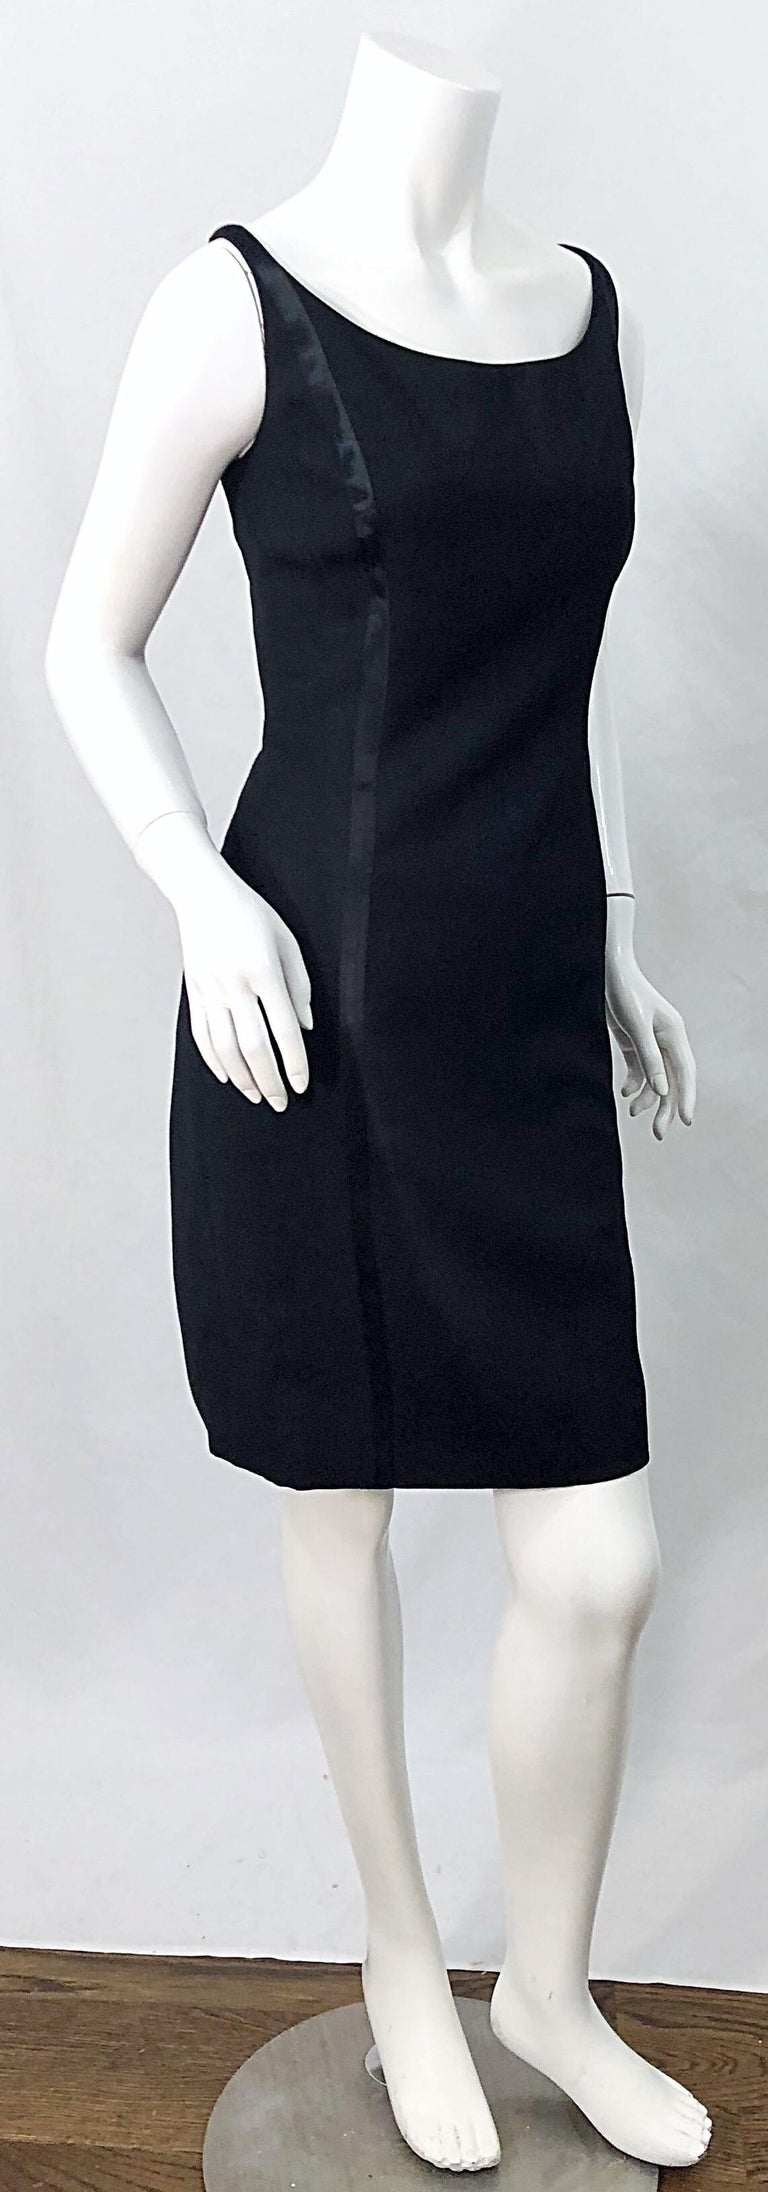 NWT 1990s Claude Montana Size 6 Vintage 90s Sleeveless Little Black Dress  For Sale 8